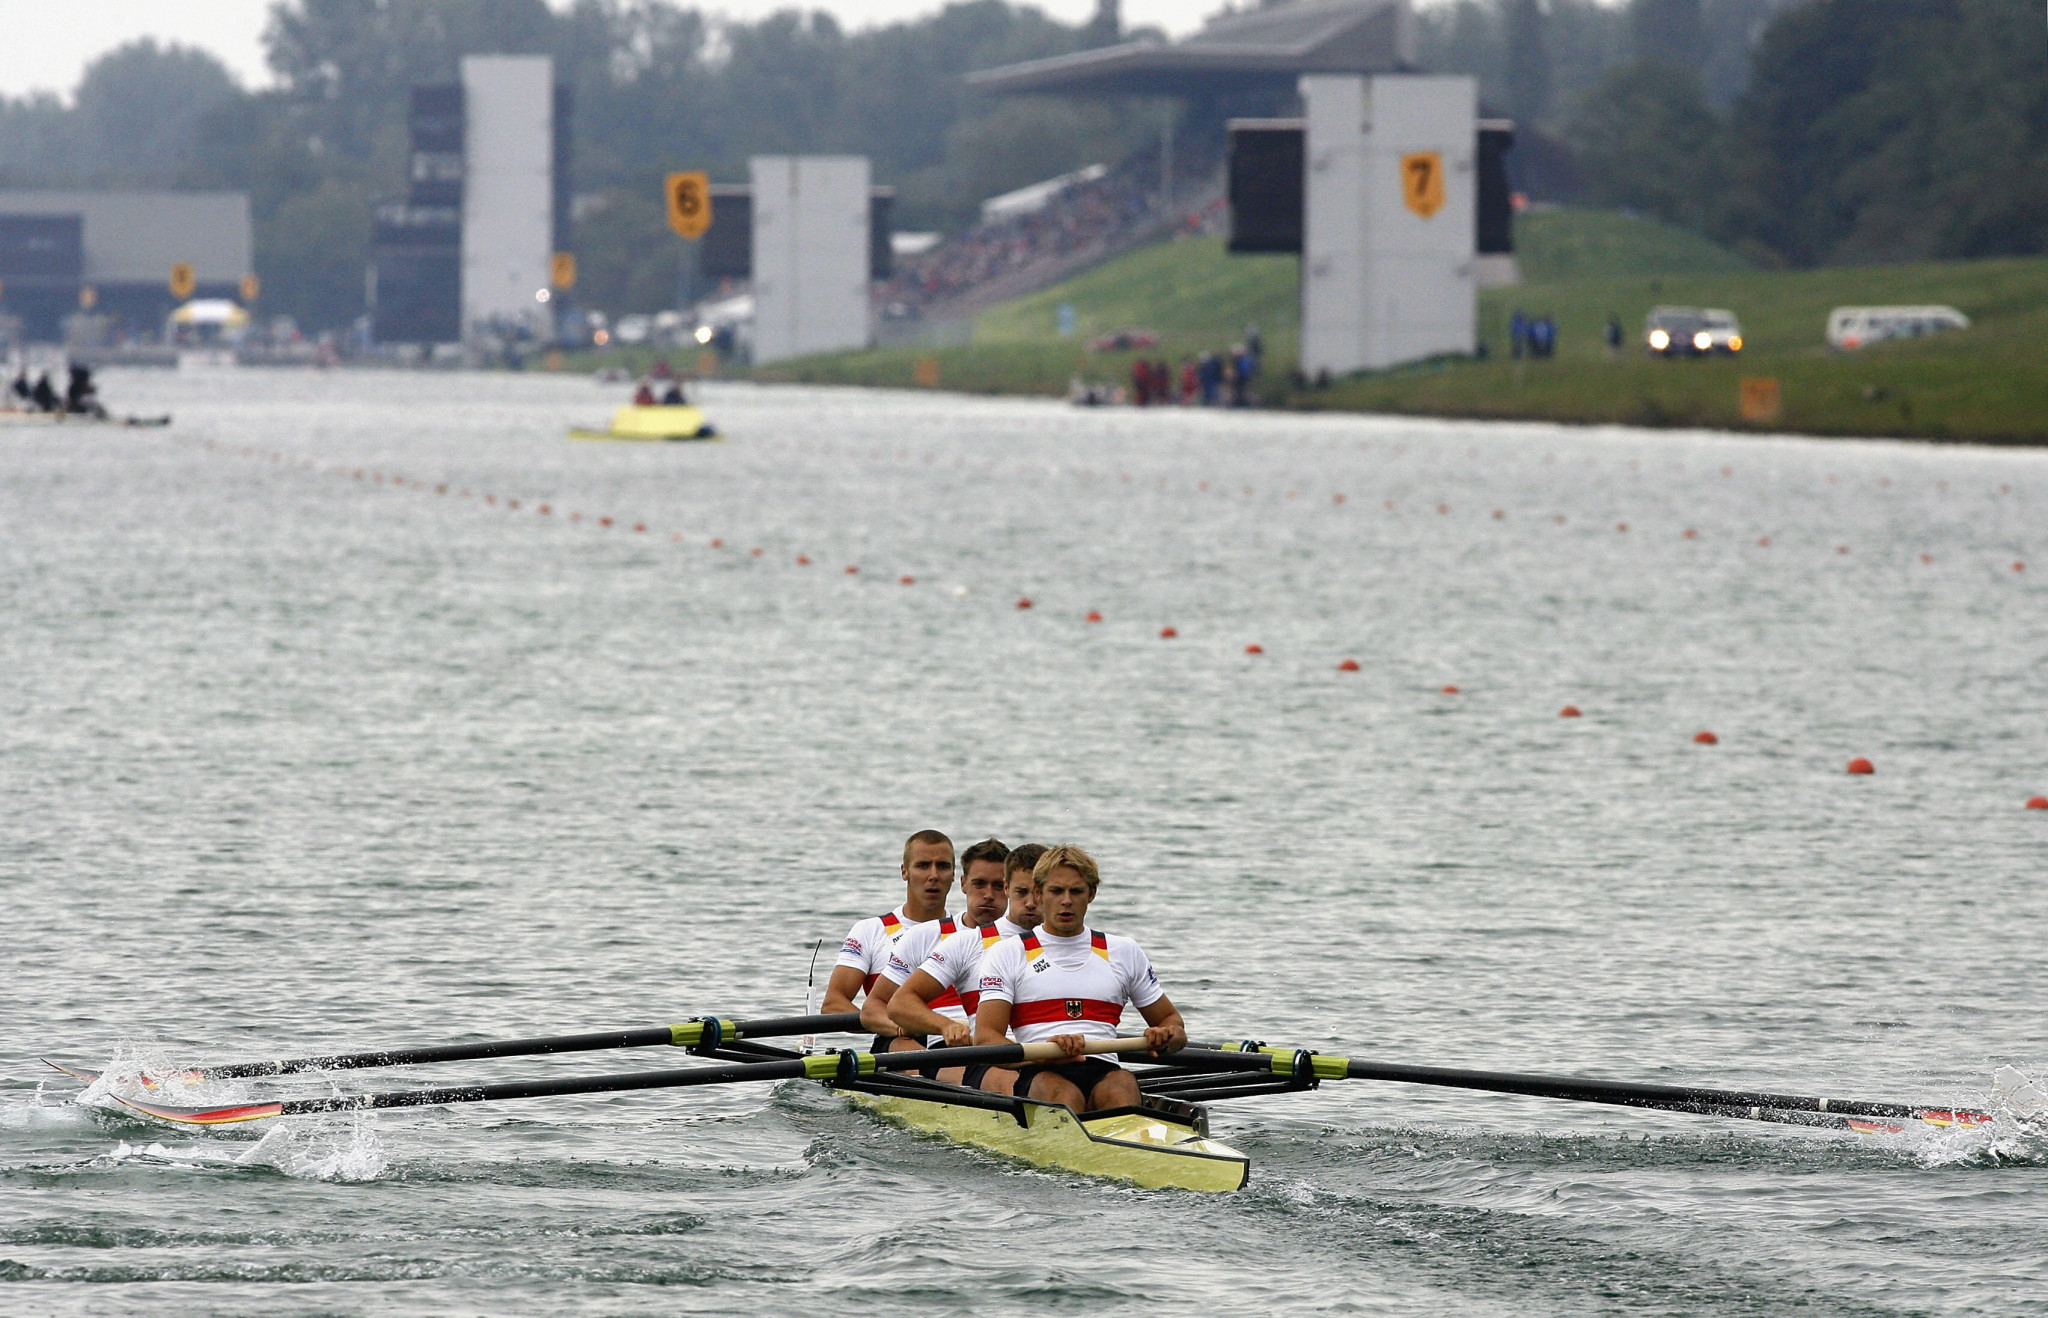 """Council funding """"not enough"""" to restore 2022 European Championships rowing venue"""